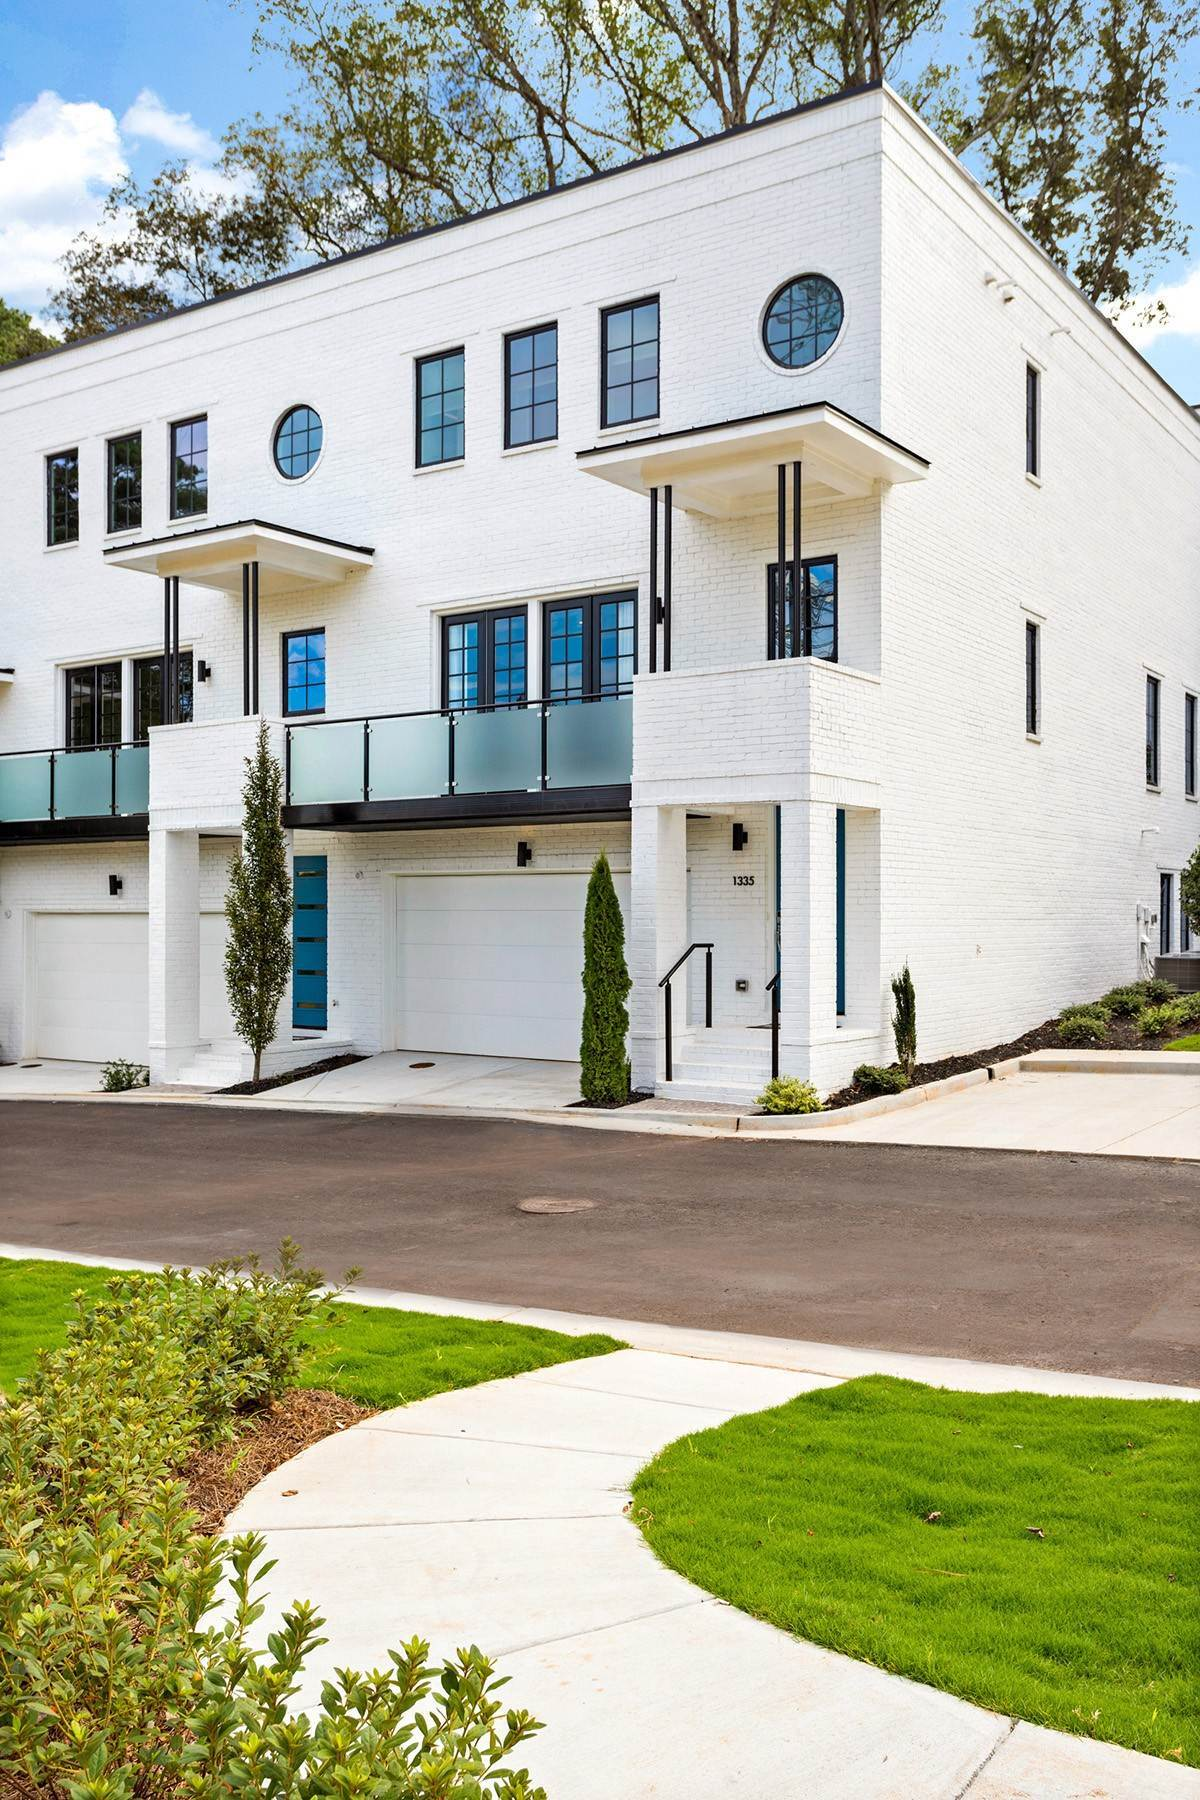 townhouses for Sale at Home Includes All Finishes And Features You Expect At Sophia Druid Hills. 1336 Grey Fox Court NE, No. 3 Atlanta, Georgia 30306 United States